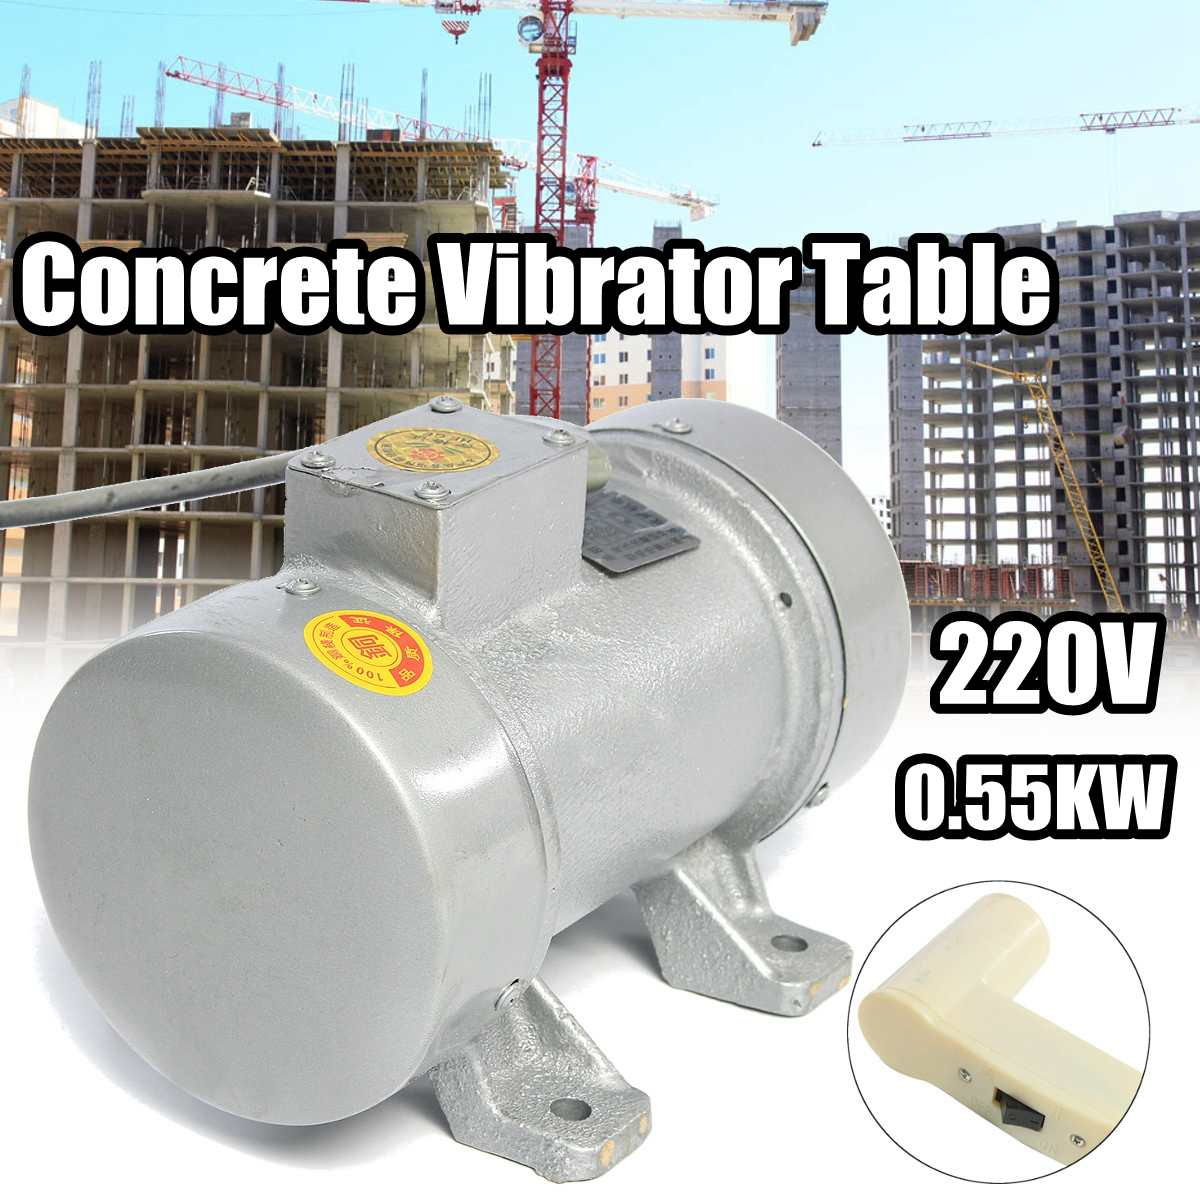 Drillpro 220V 550W Concrete Vibrator Motor Single phase copper core For Concrete Vibrator Table Tools Drillpro 220V 550W Concrete Vibrator Motor Single phase copper core For Concrete Vibrator Table Tools